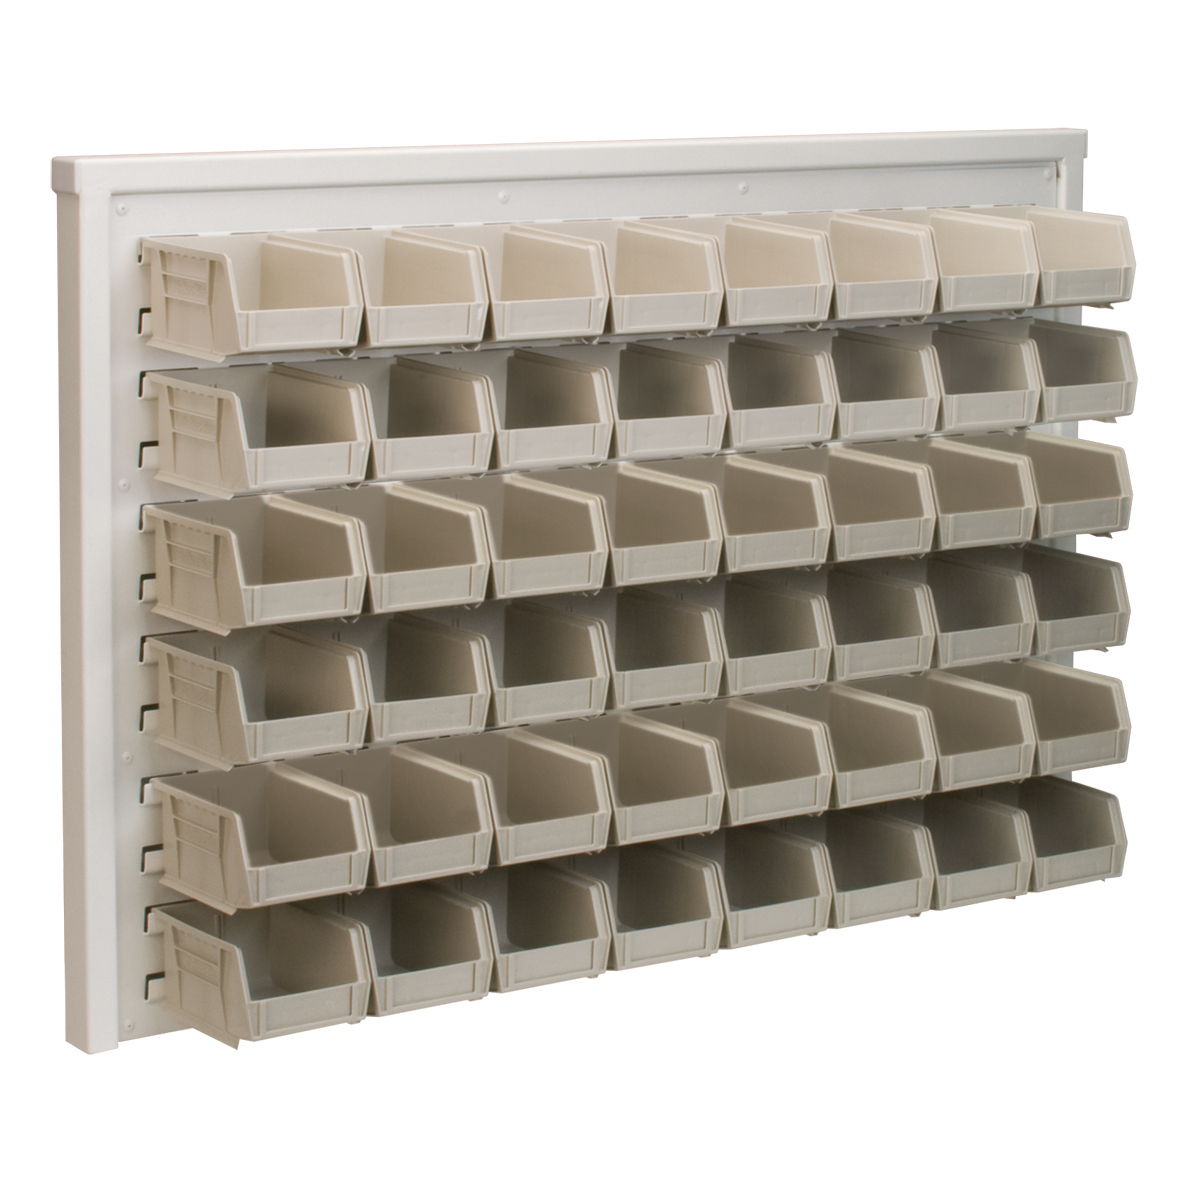 Item DISCONTINUED by Manufacturer.  ReadySpace Wall Rack w/ 48 AkroBins 30210STONE , White (30536210S).  This item sold in carton quantities of 1.